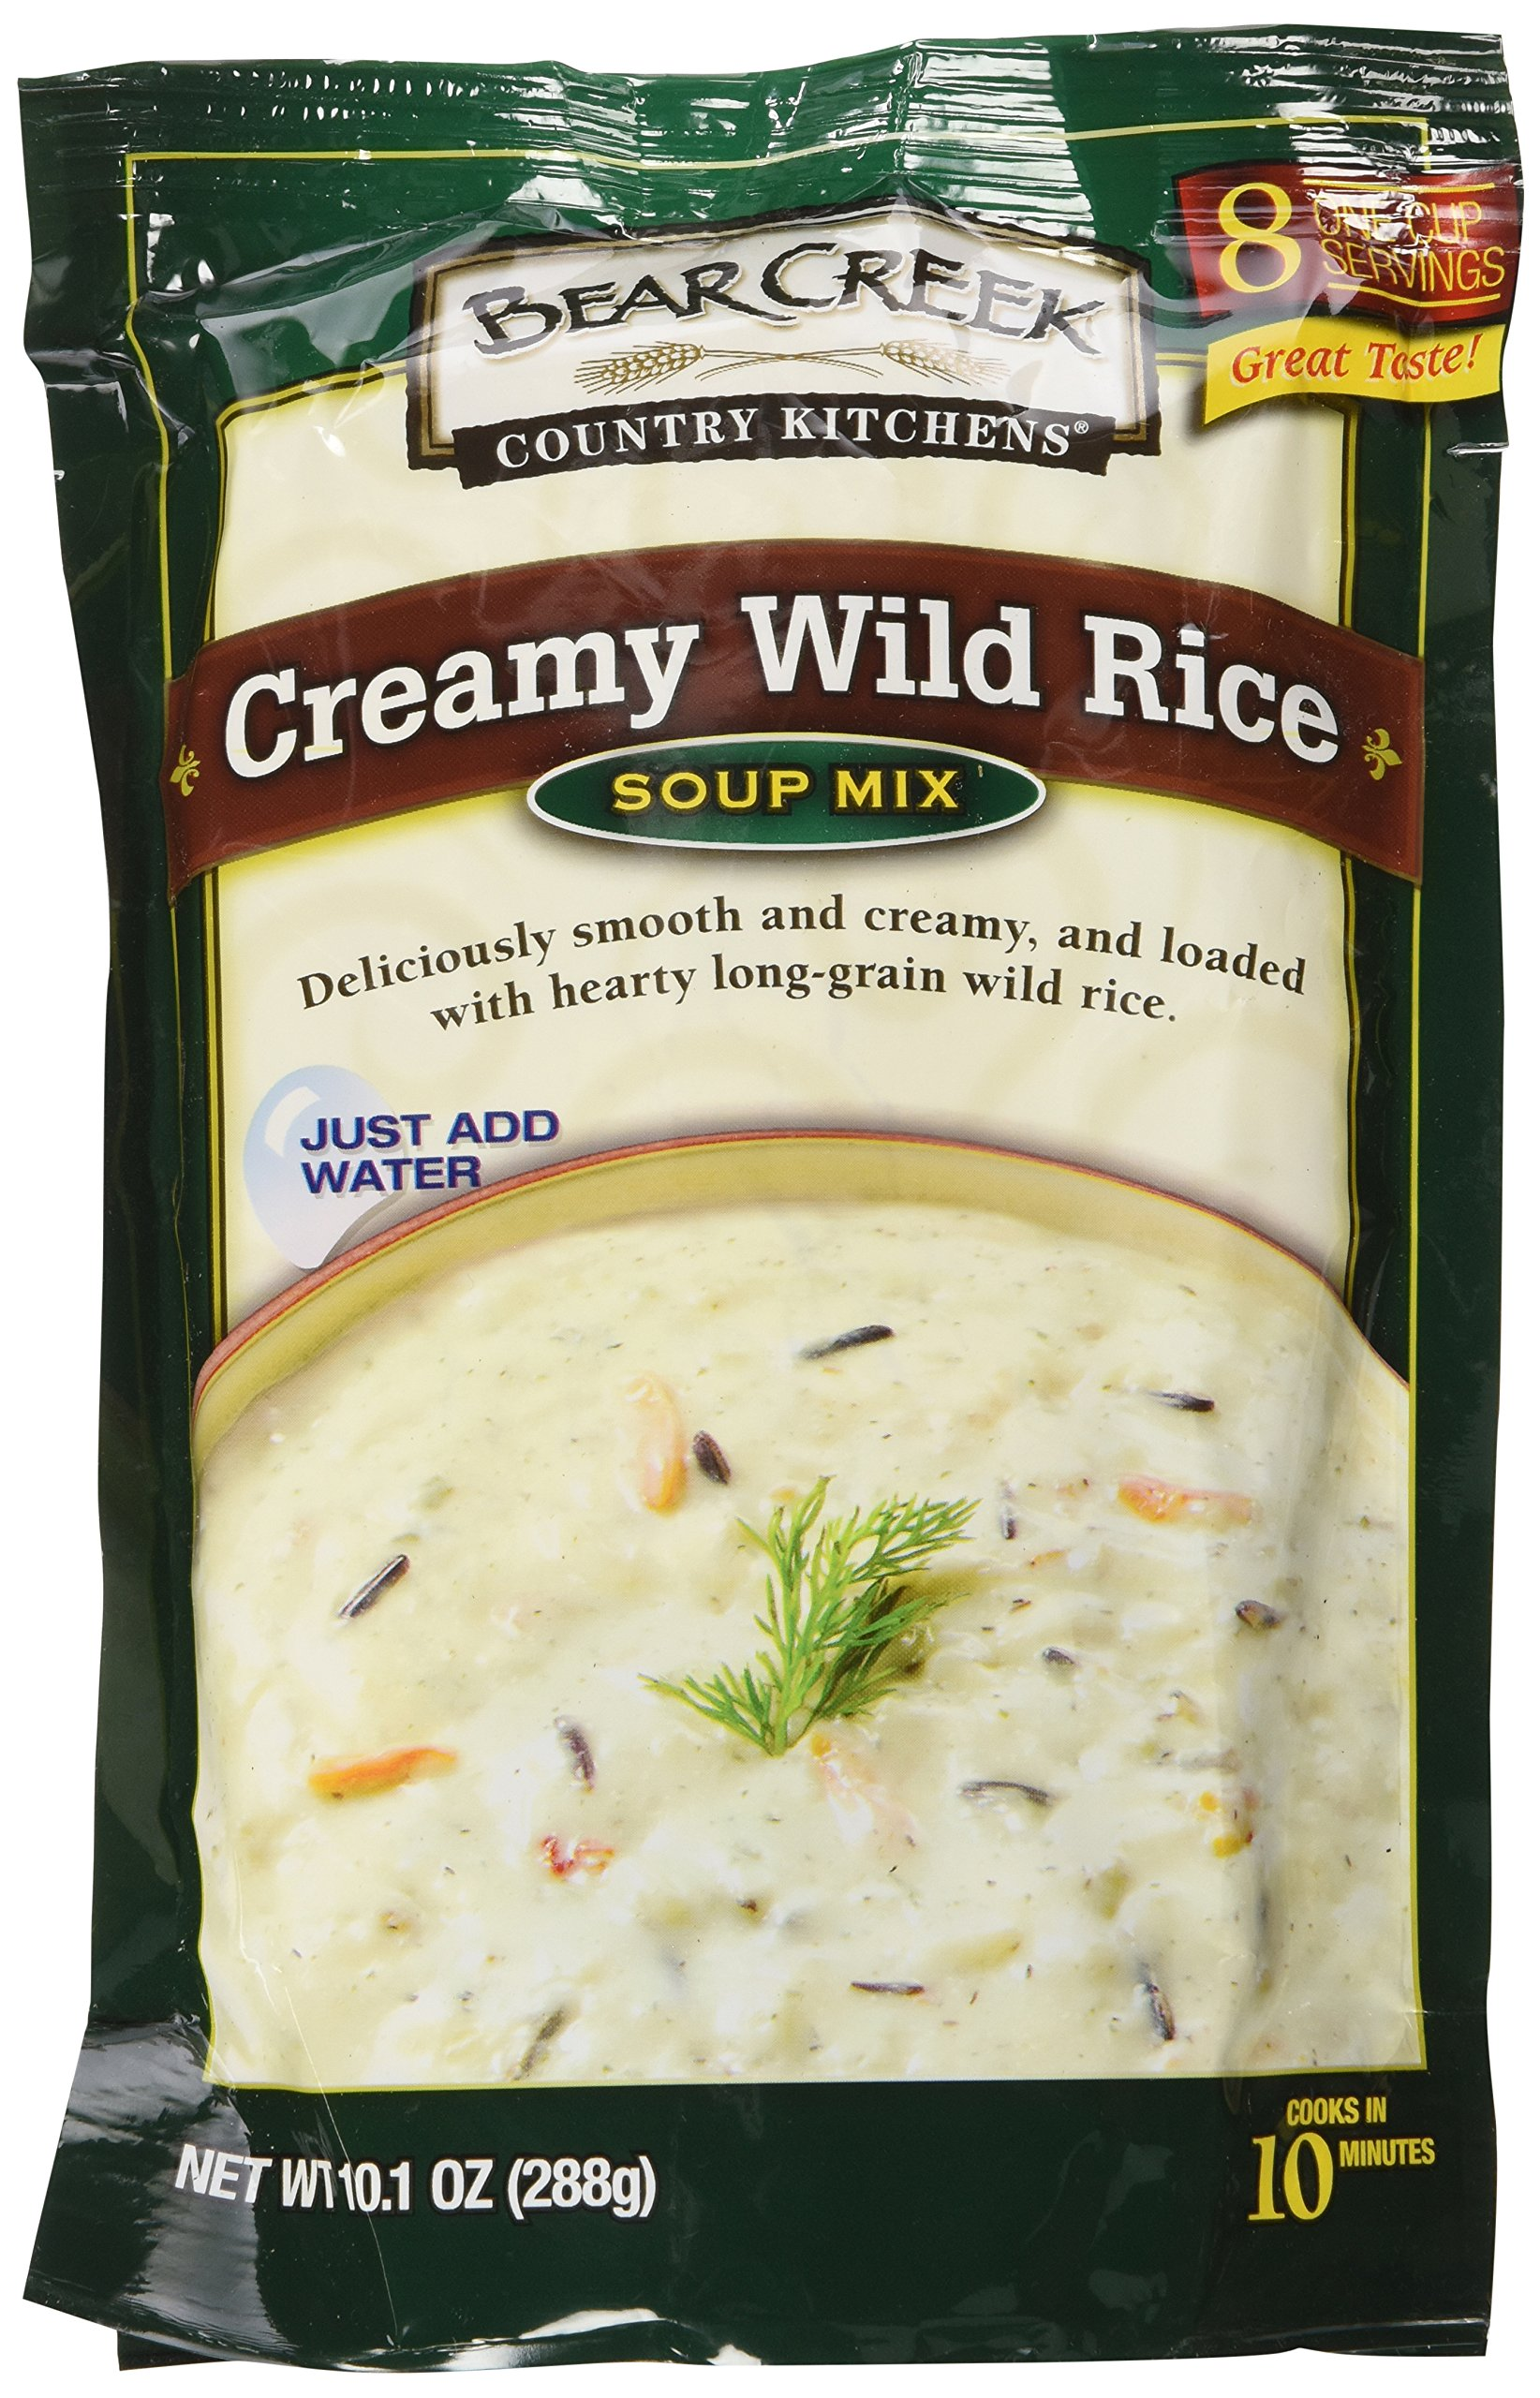 Bear Creek Country Kitchens Dry Soup Mix 6-Pack: 2 Chicken Noodle, 2 Creamy Wild Rice, 2 Cheddar Broccoli, Each Package Makes 8 Hearty One-Cup Servings, Just Add Water!